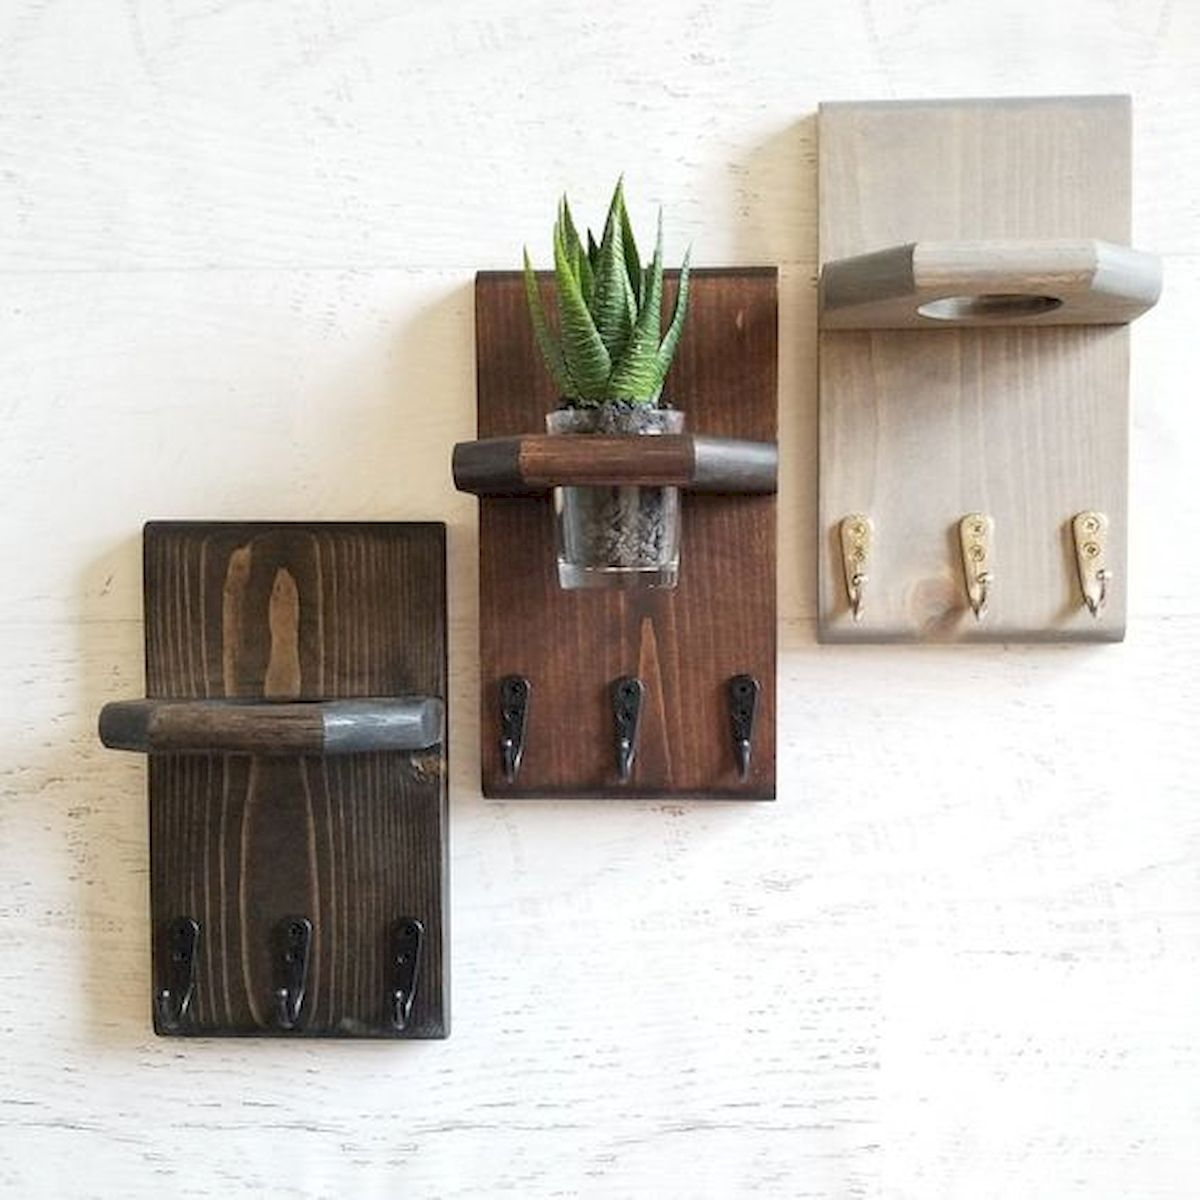 60 Easy DIY Wood Projects for Beginners (24)